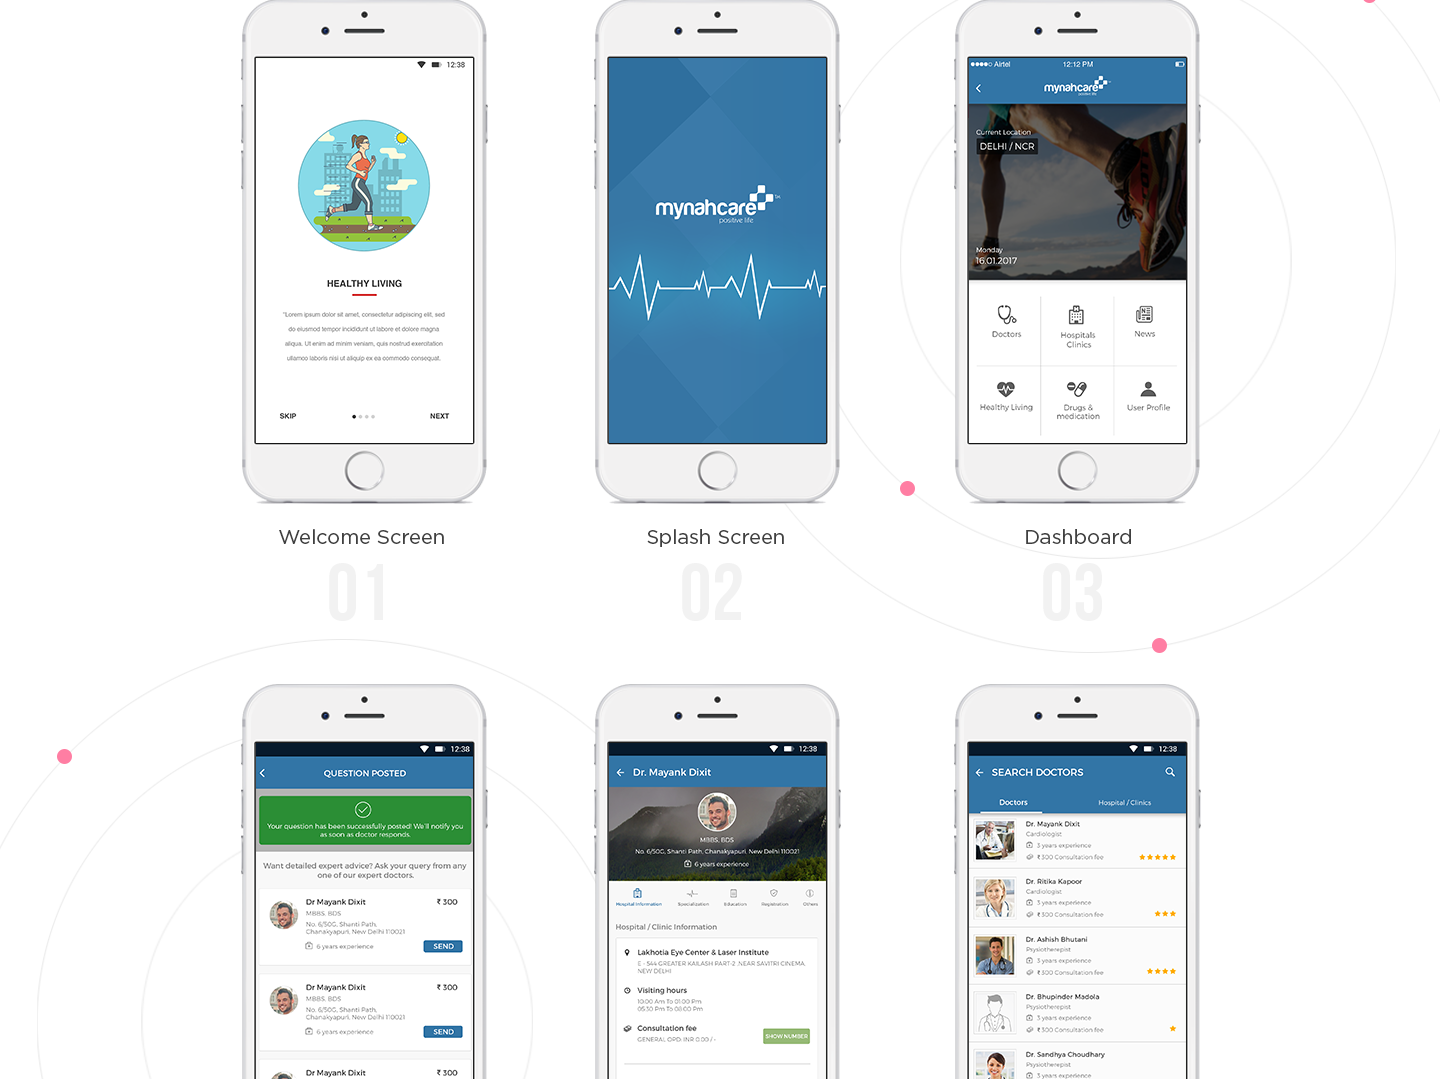 Mobile App for Doctors by Mayank Dixit on Dribbble